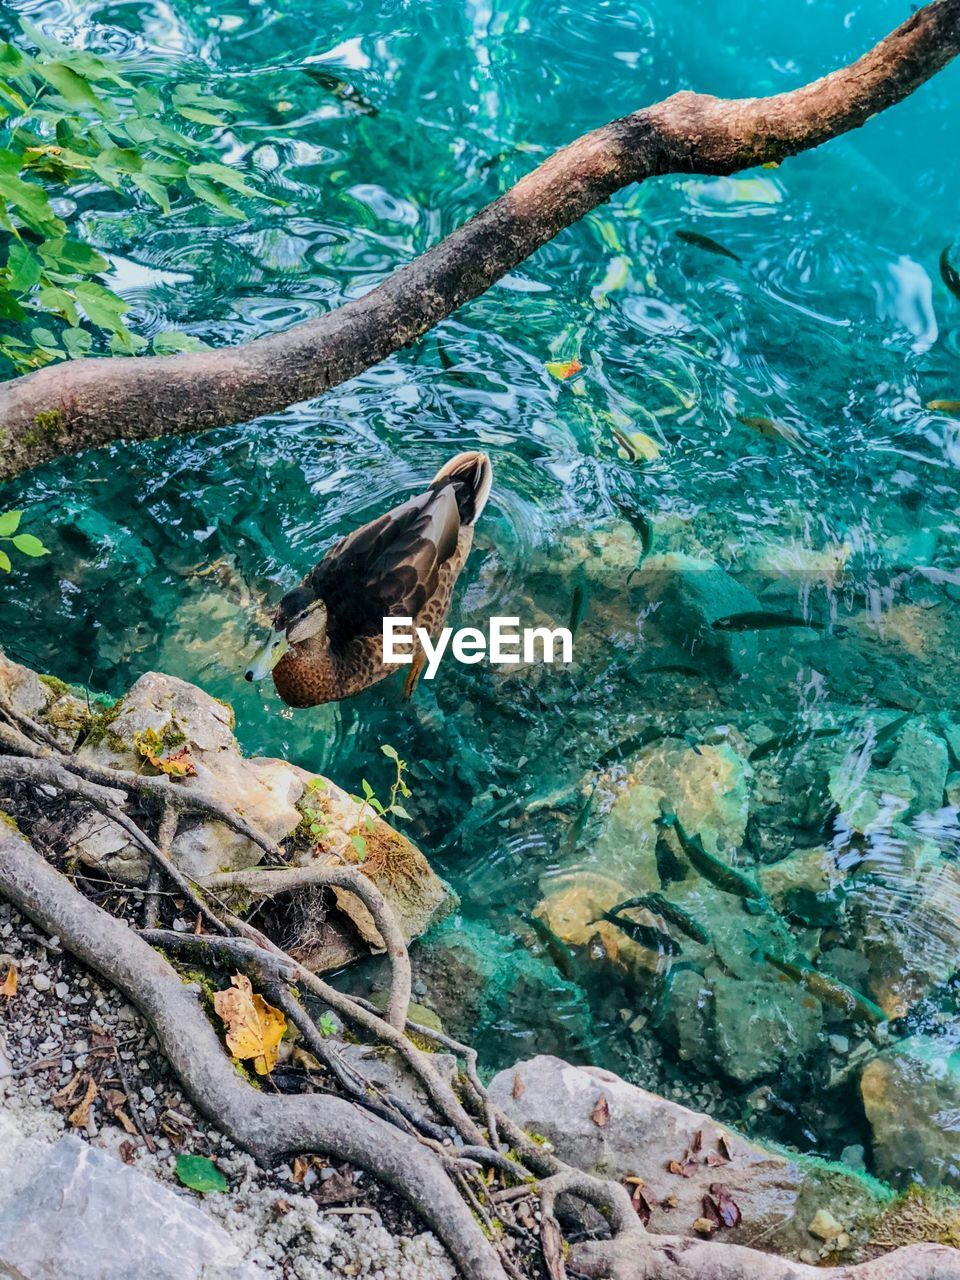 animals in the wild, animal wildlife, animal, water, animal themes, vertebrate, one animal, nature, no people, sea, bird, day, underwater, high angle view, rock, tree, solid, turquoise colored, outdoors, marine